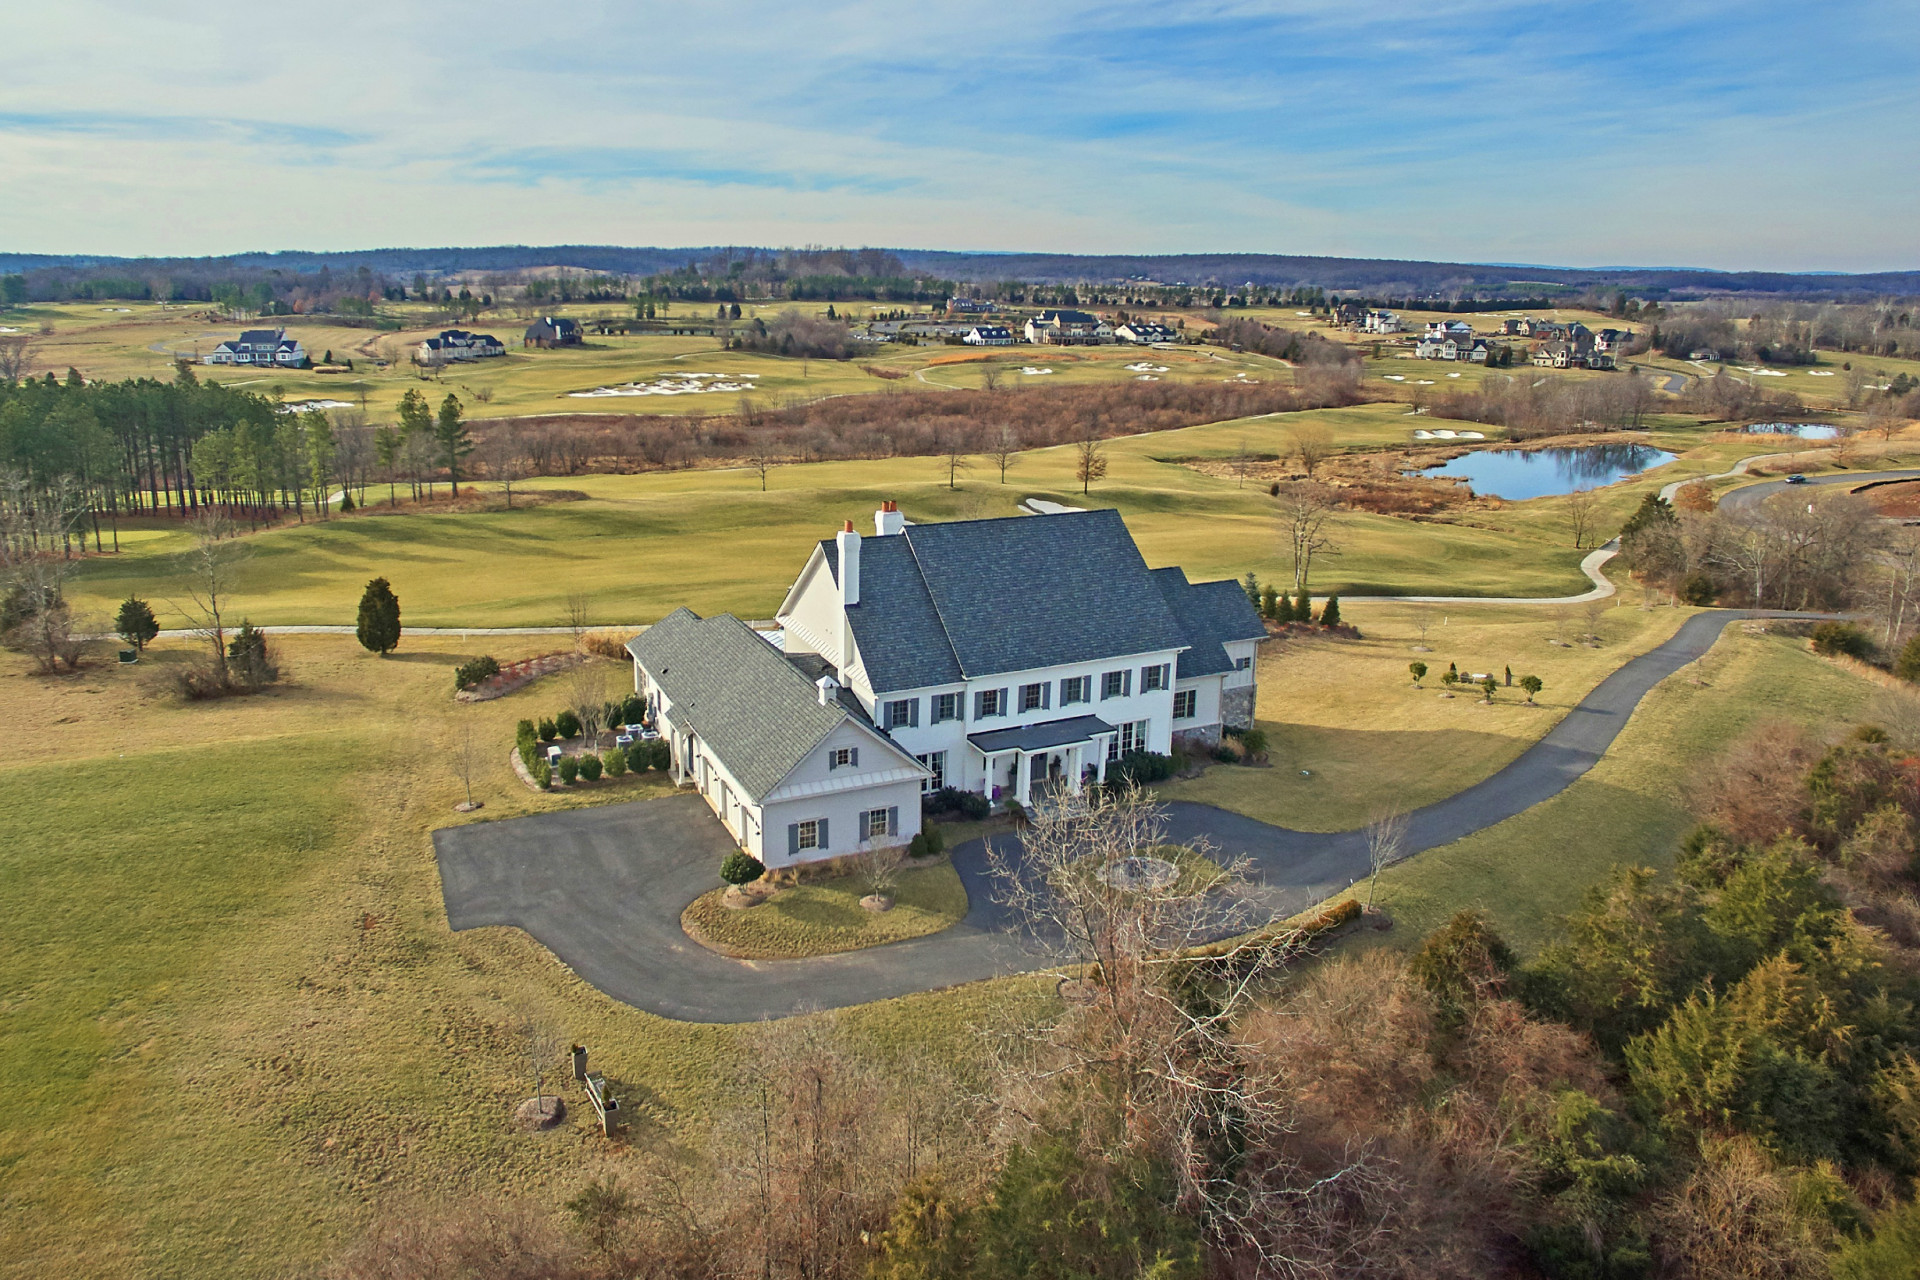 Single Family Home for Sale at Stylish Modern Farmhouse 22443 Creighton Farms Drive Leesburg, Virginia 20175 United States